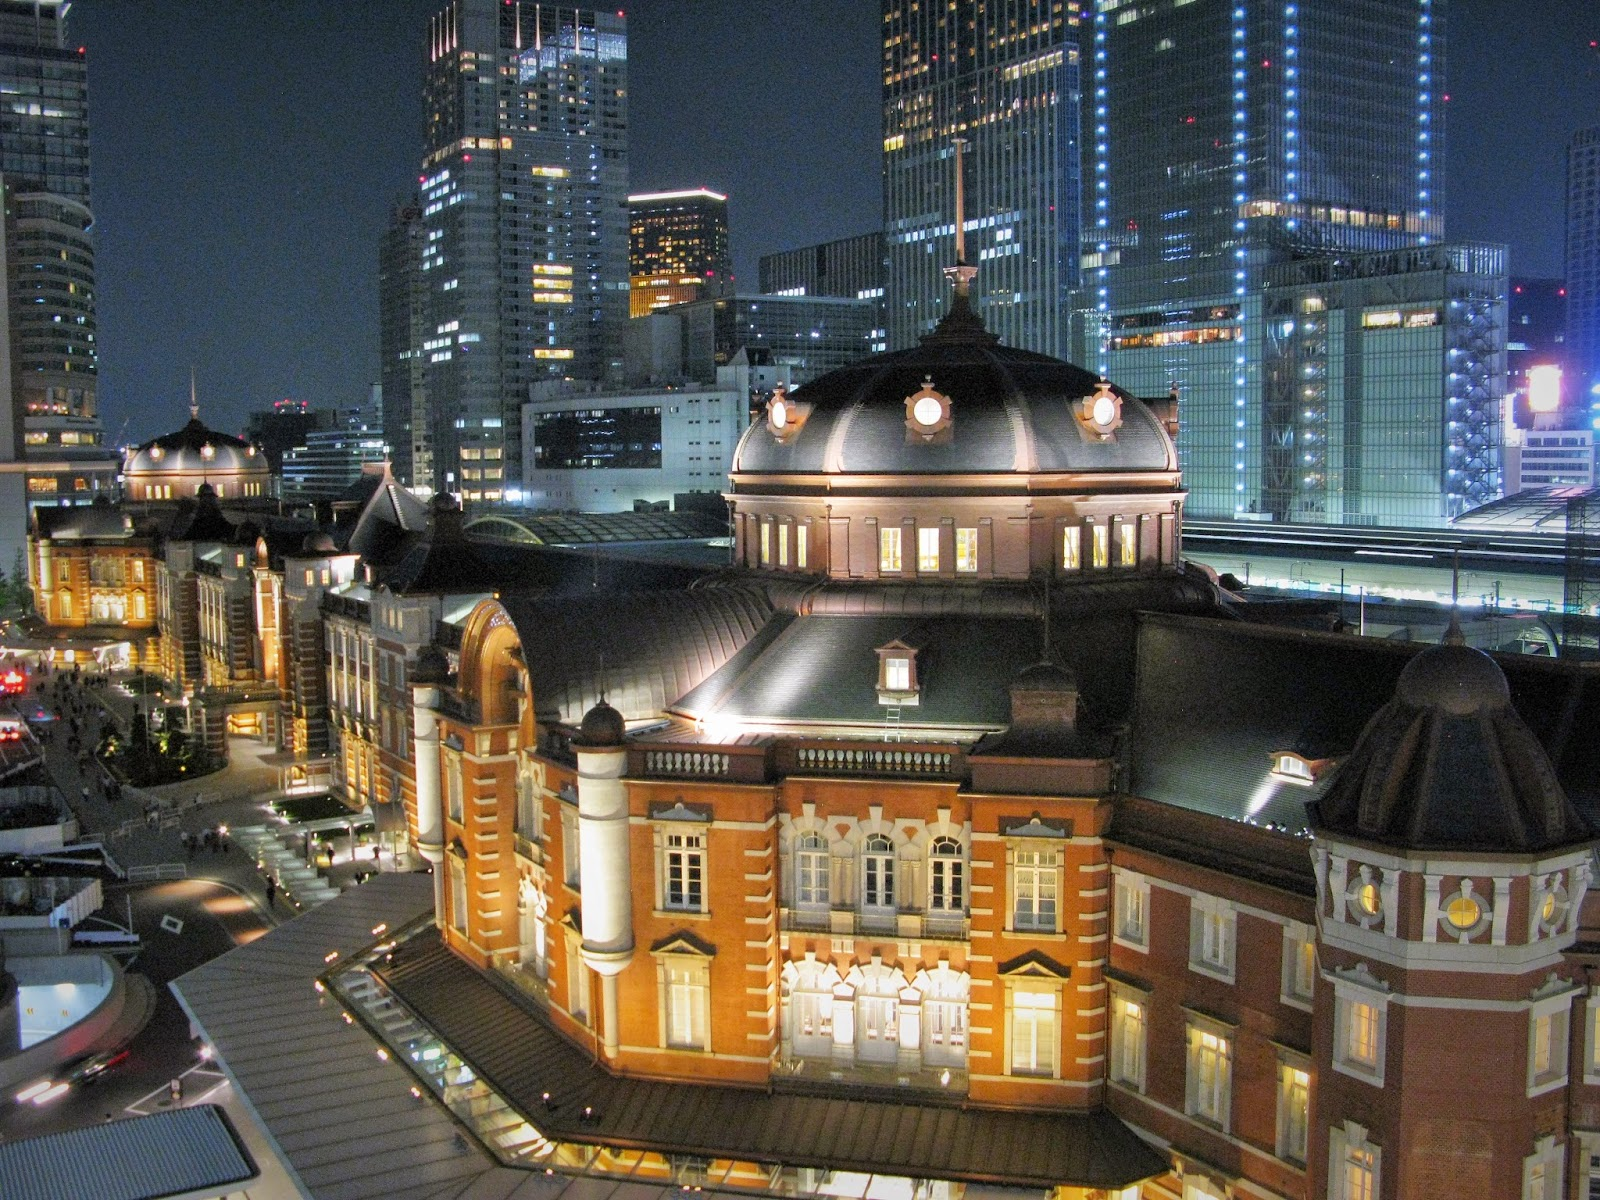 Recently restored Tokyo Station by night.